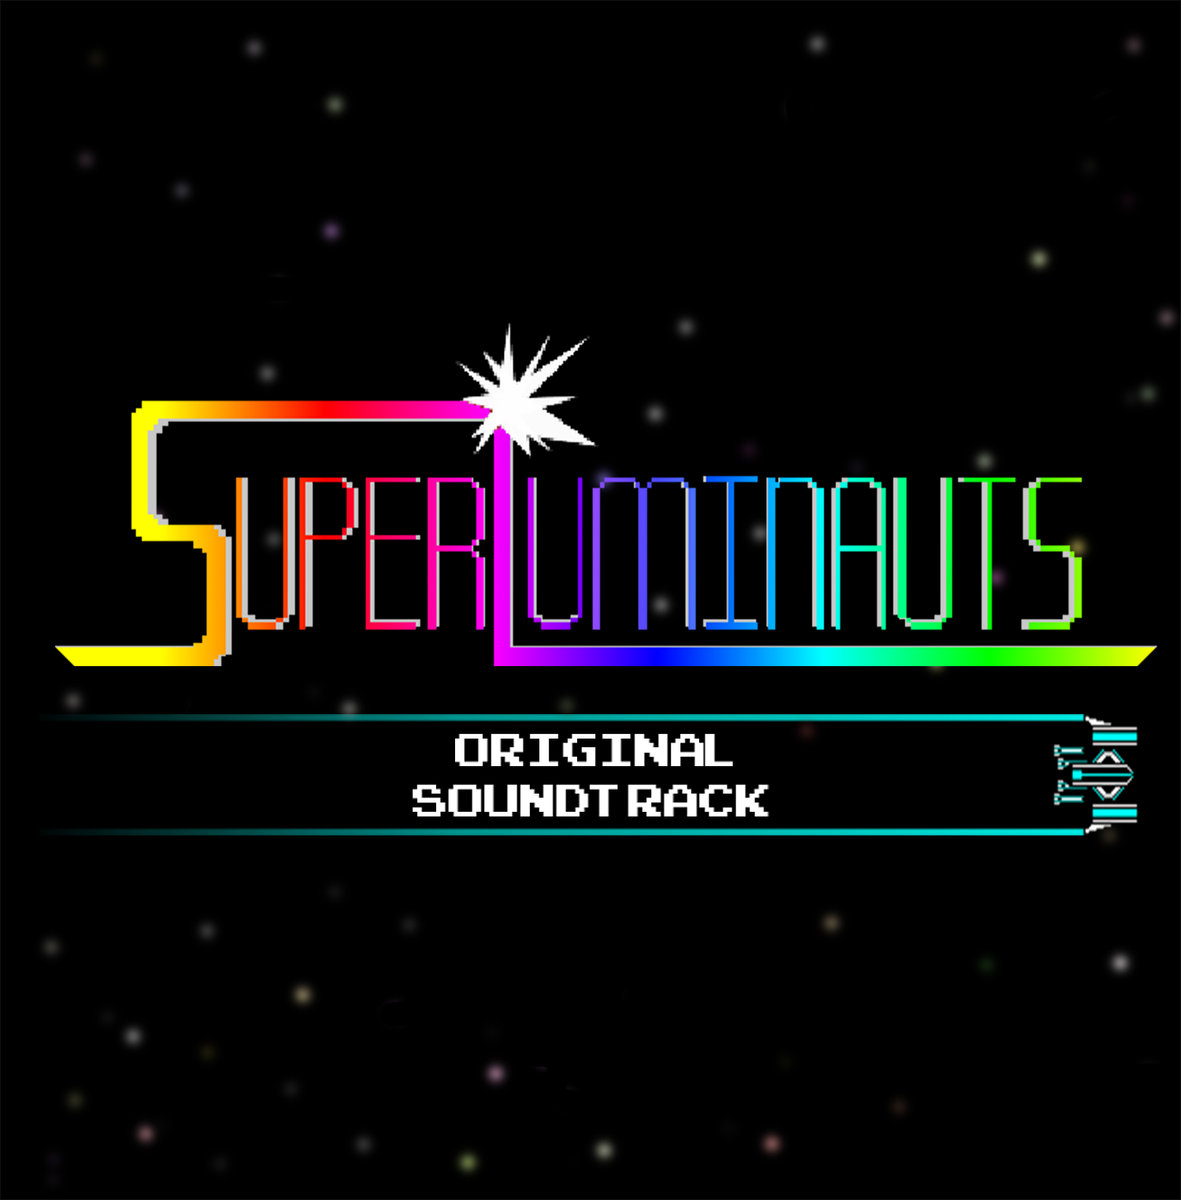 Superlumiauts - Original Soundtrack - Video Game  Composition / Sound FX Design